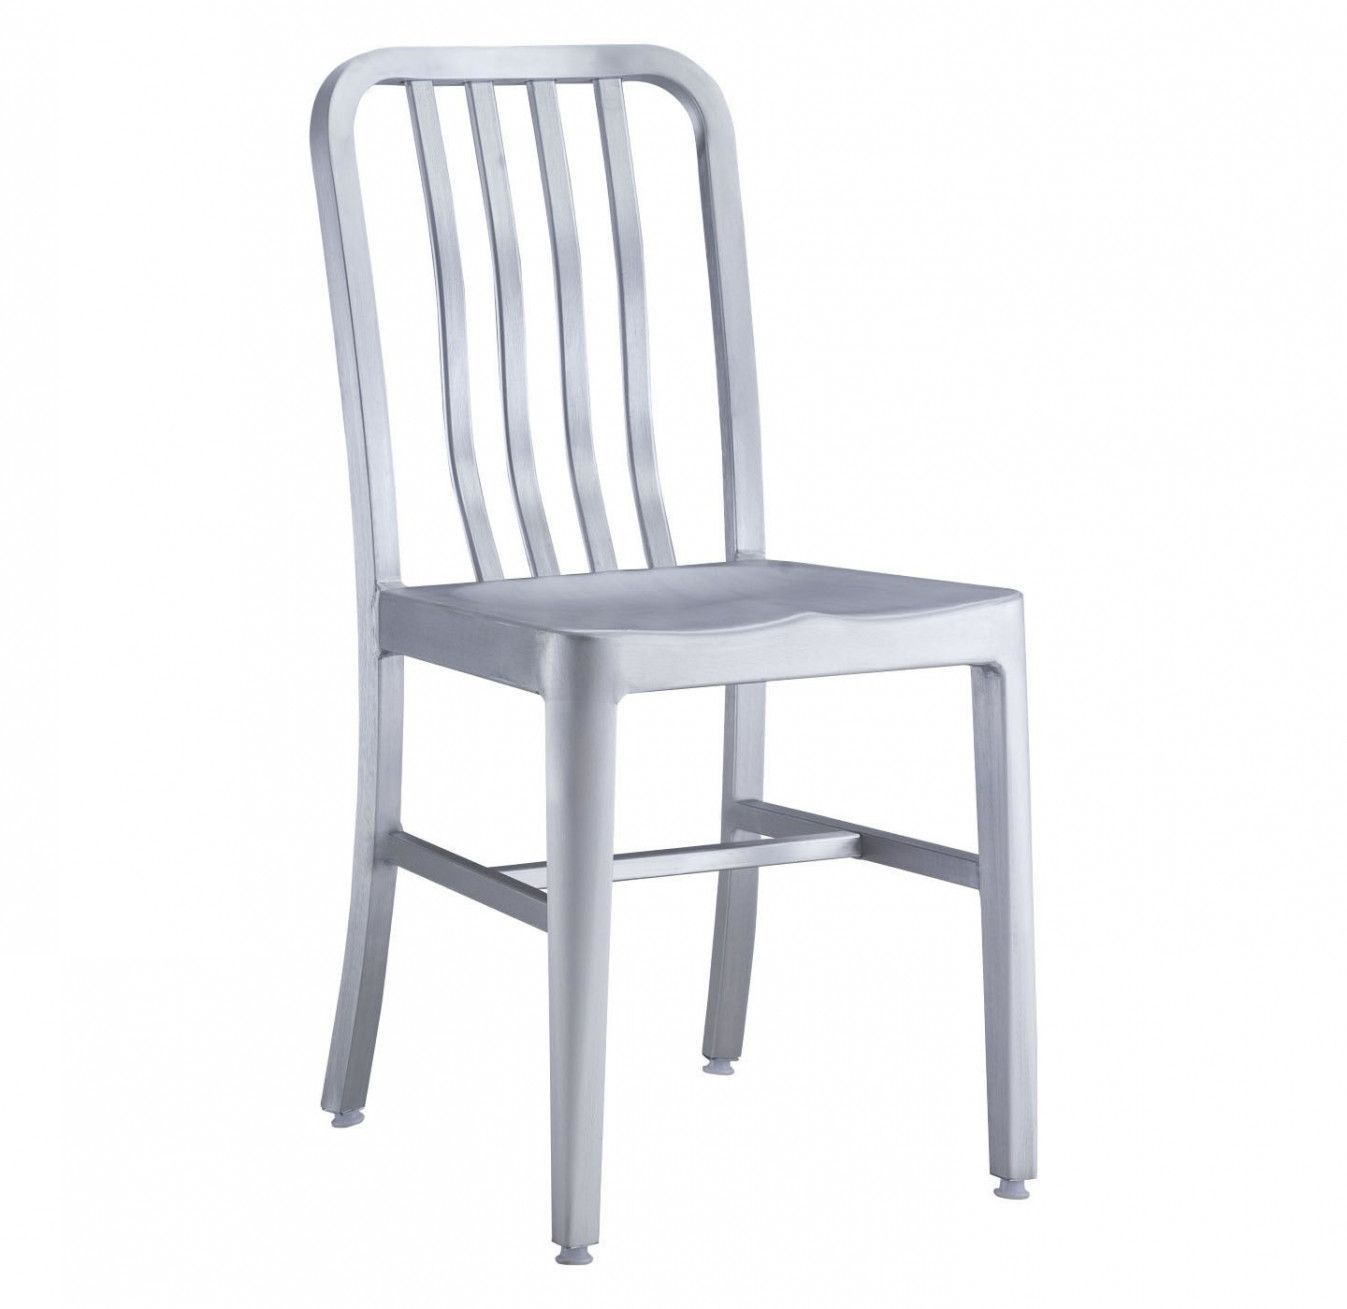 50+ Aluminum Dining Room Chairs   Modern Classic Furniture Check More At  Http:/